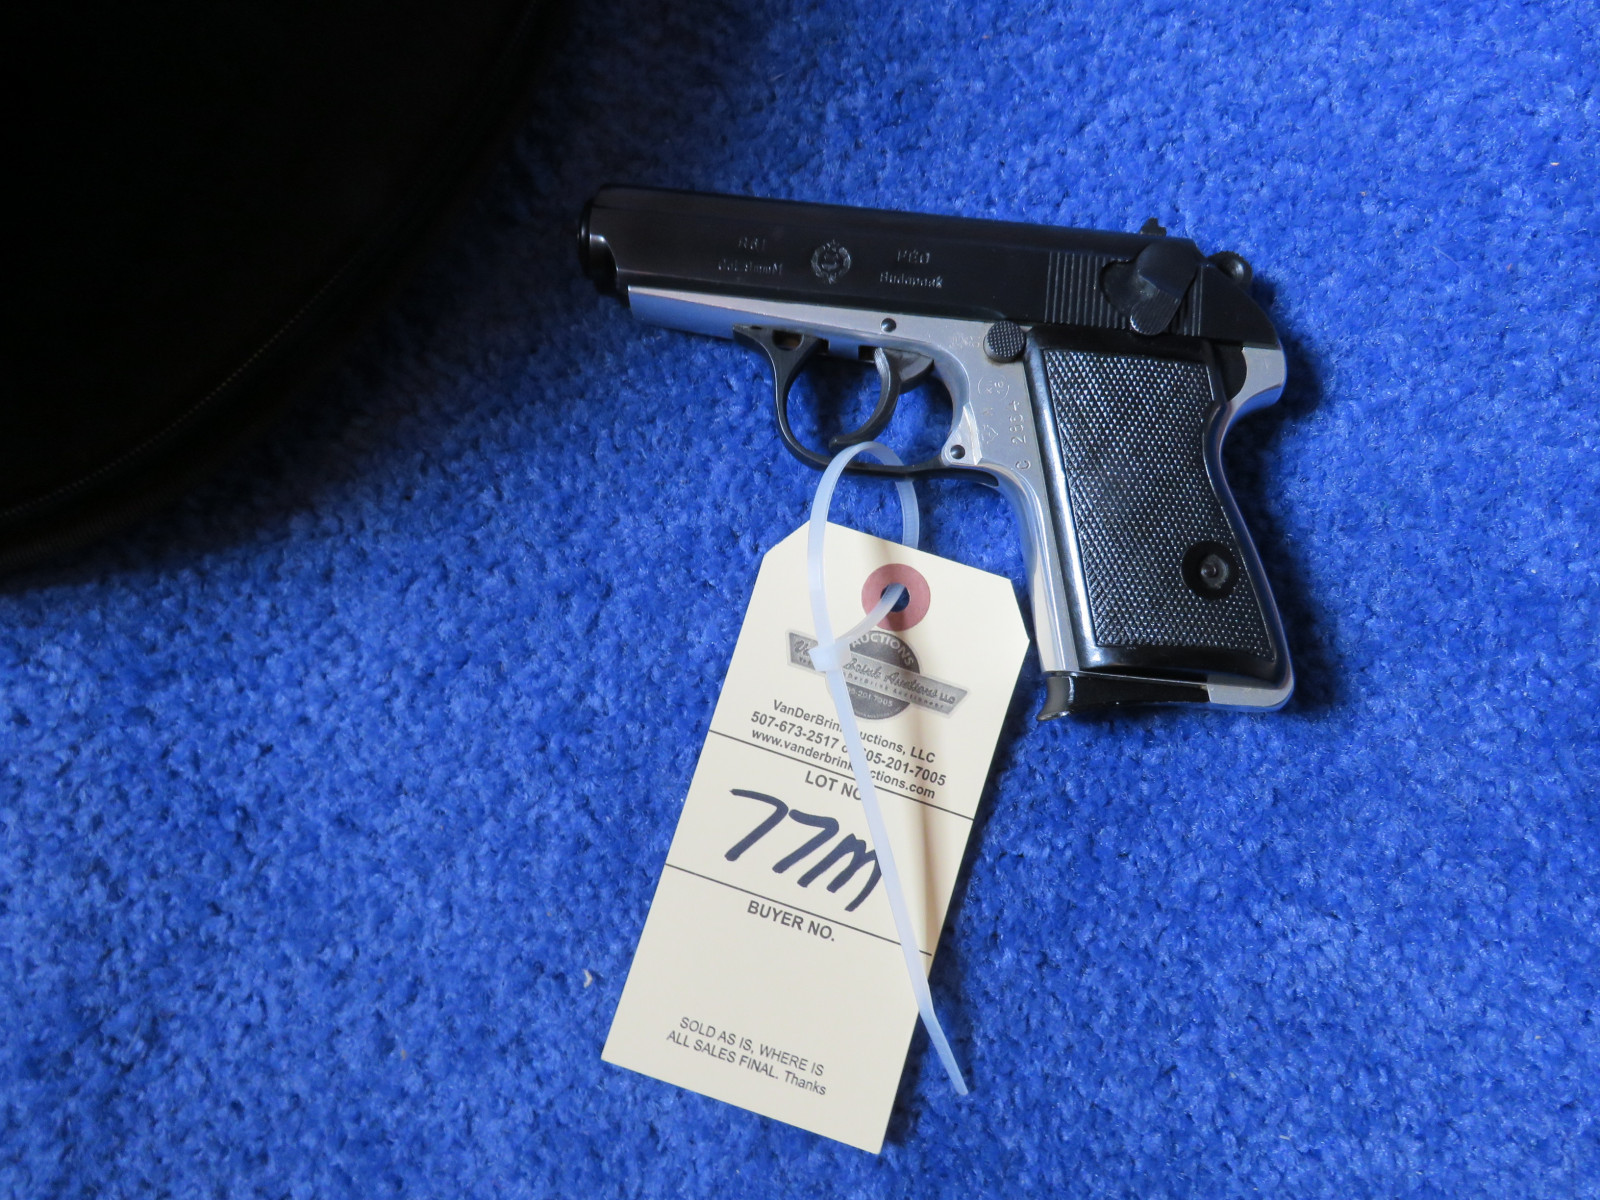 HFEG 9mm Handgun - Image 1